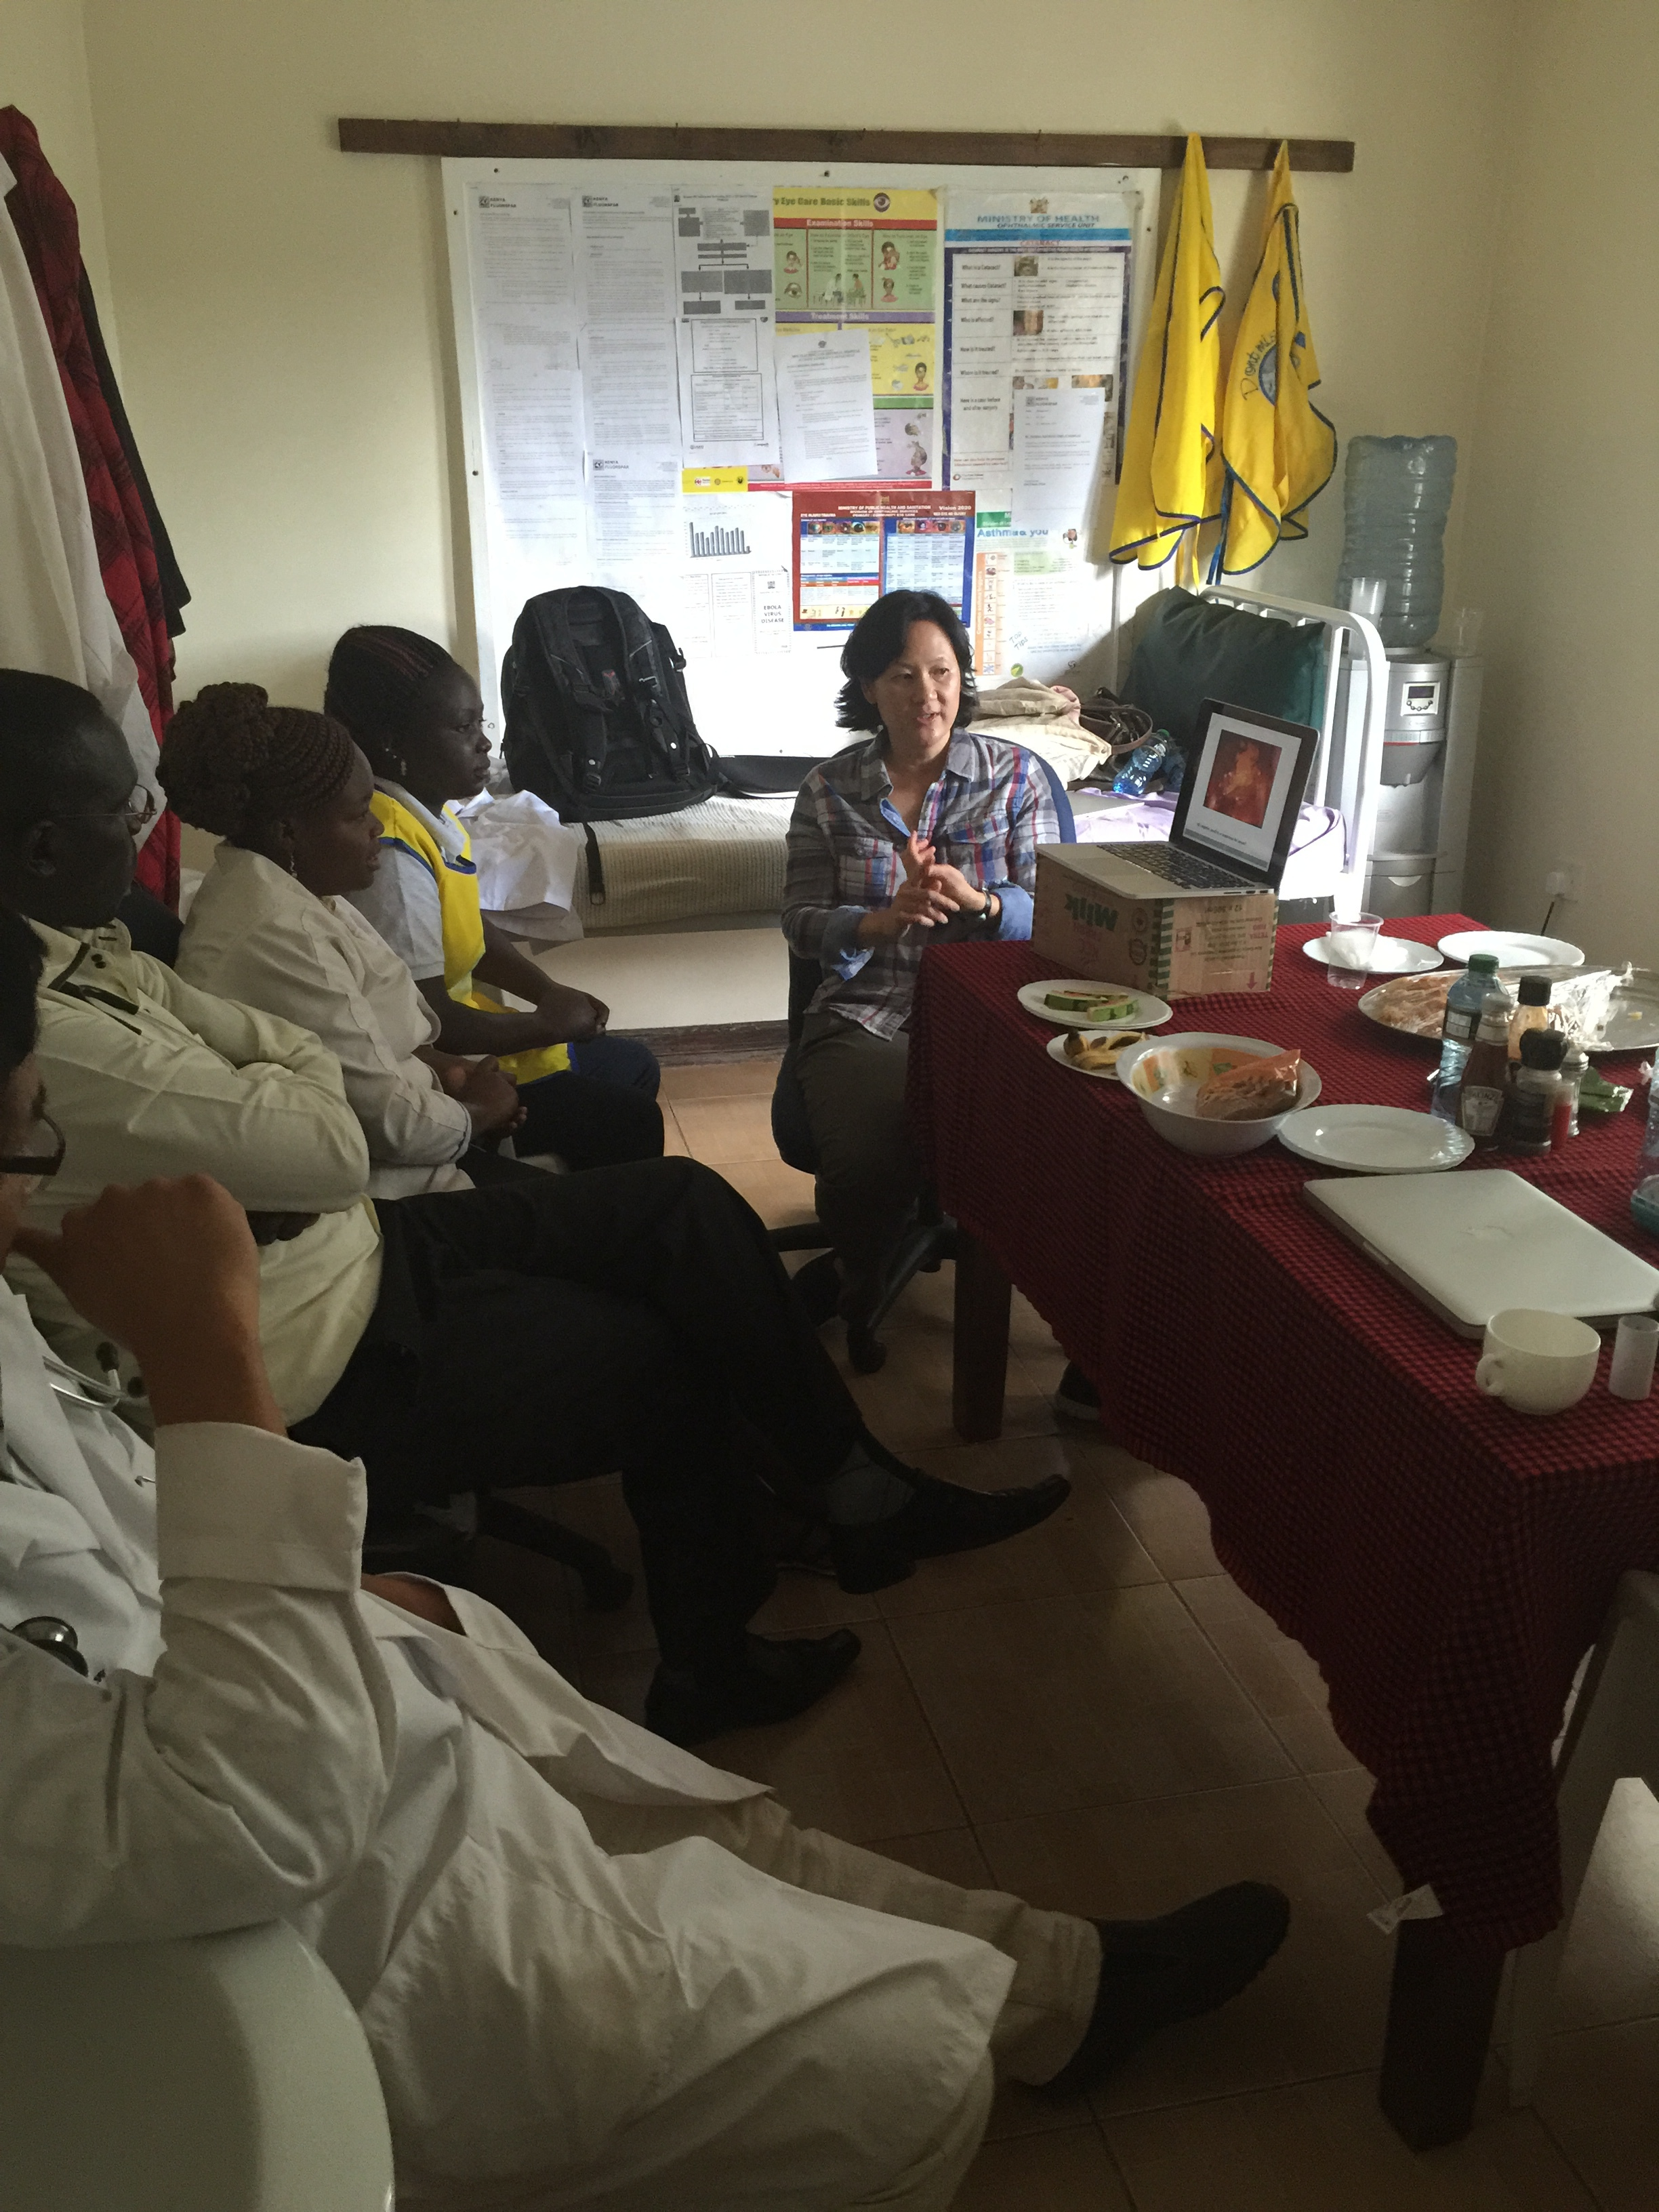 Dr. Sue teaching a class on cervical cancer screening.